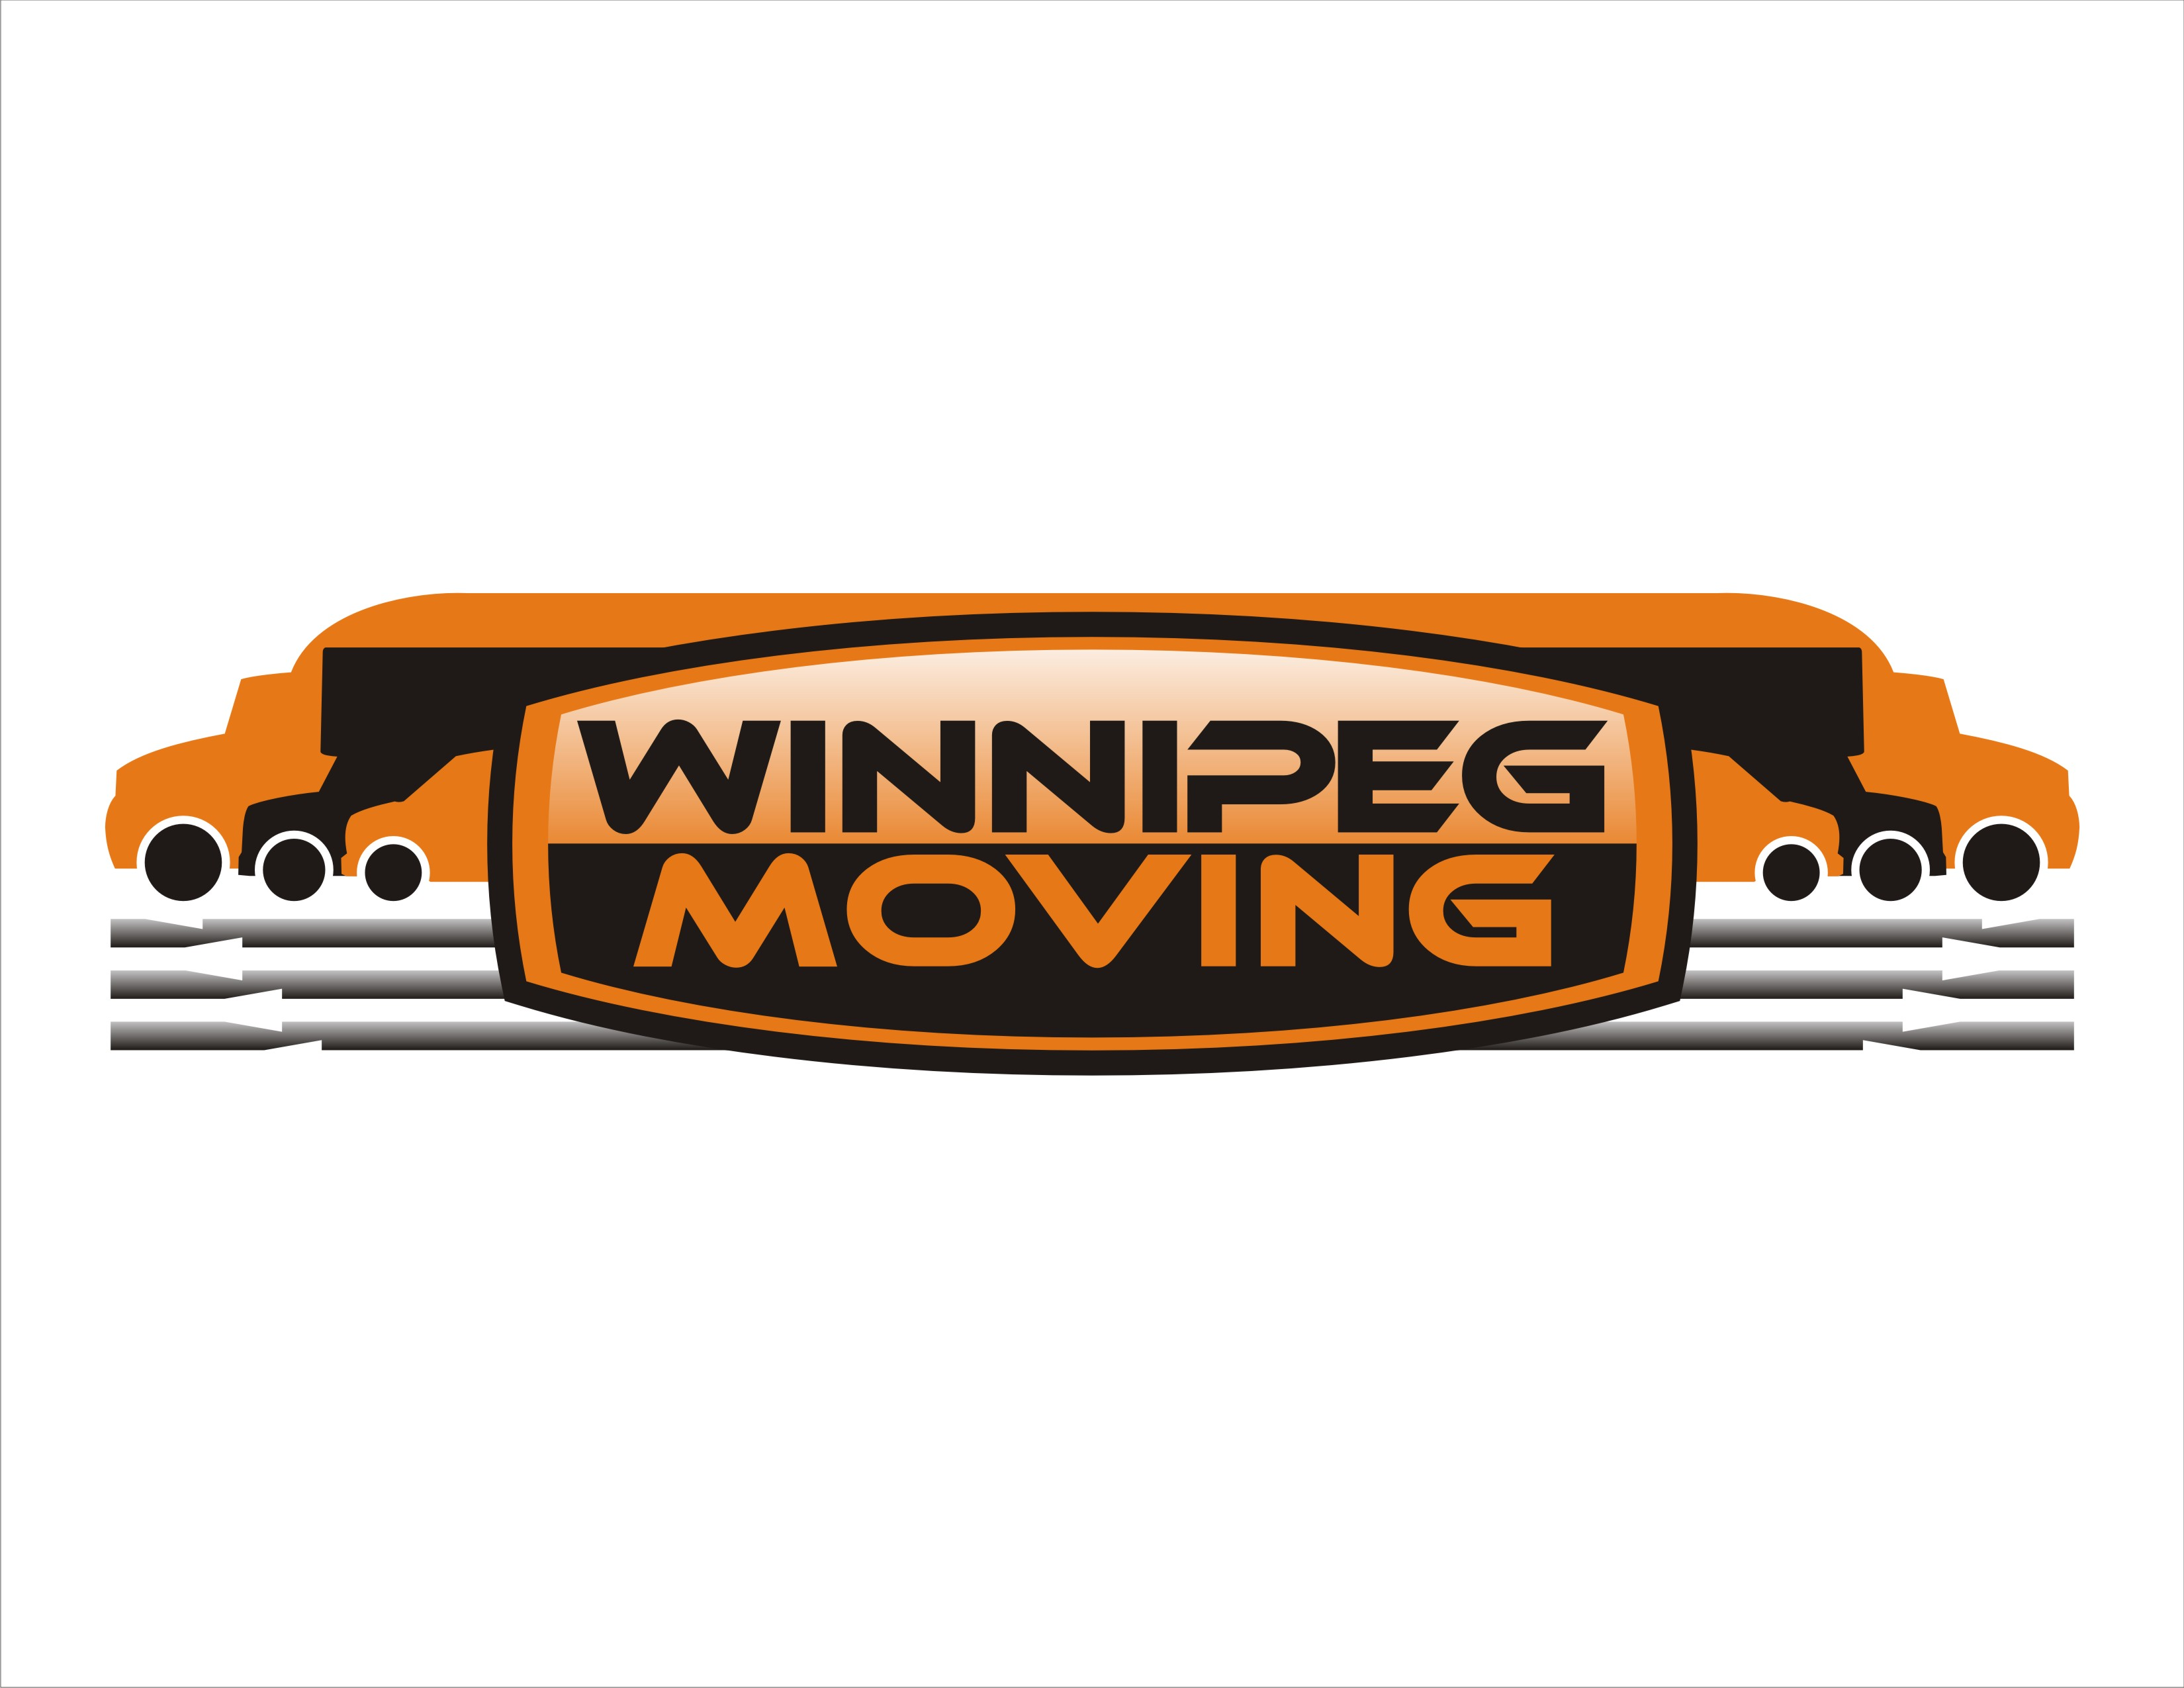 Winnipeg Moving and Storage – Providing Manitoba with moving and storage services